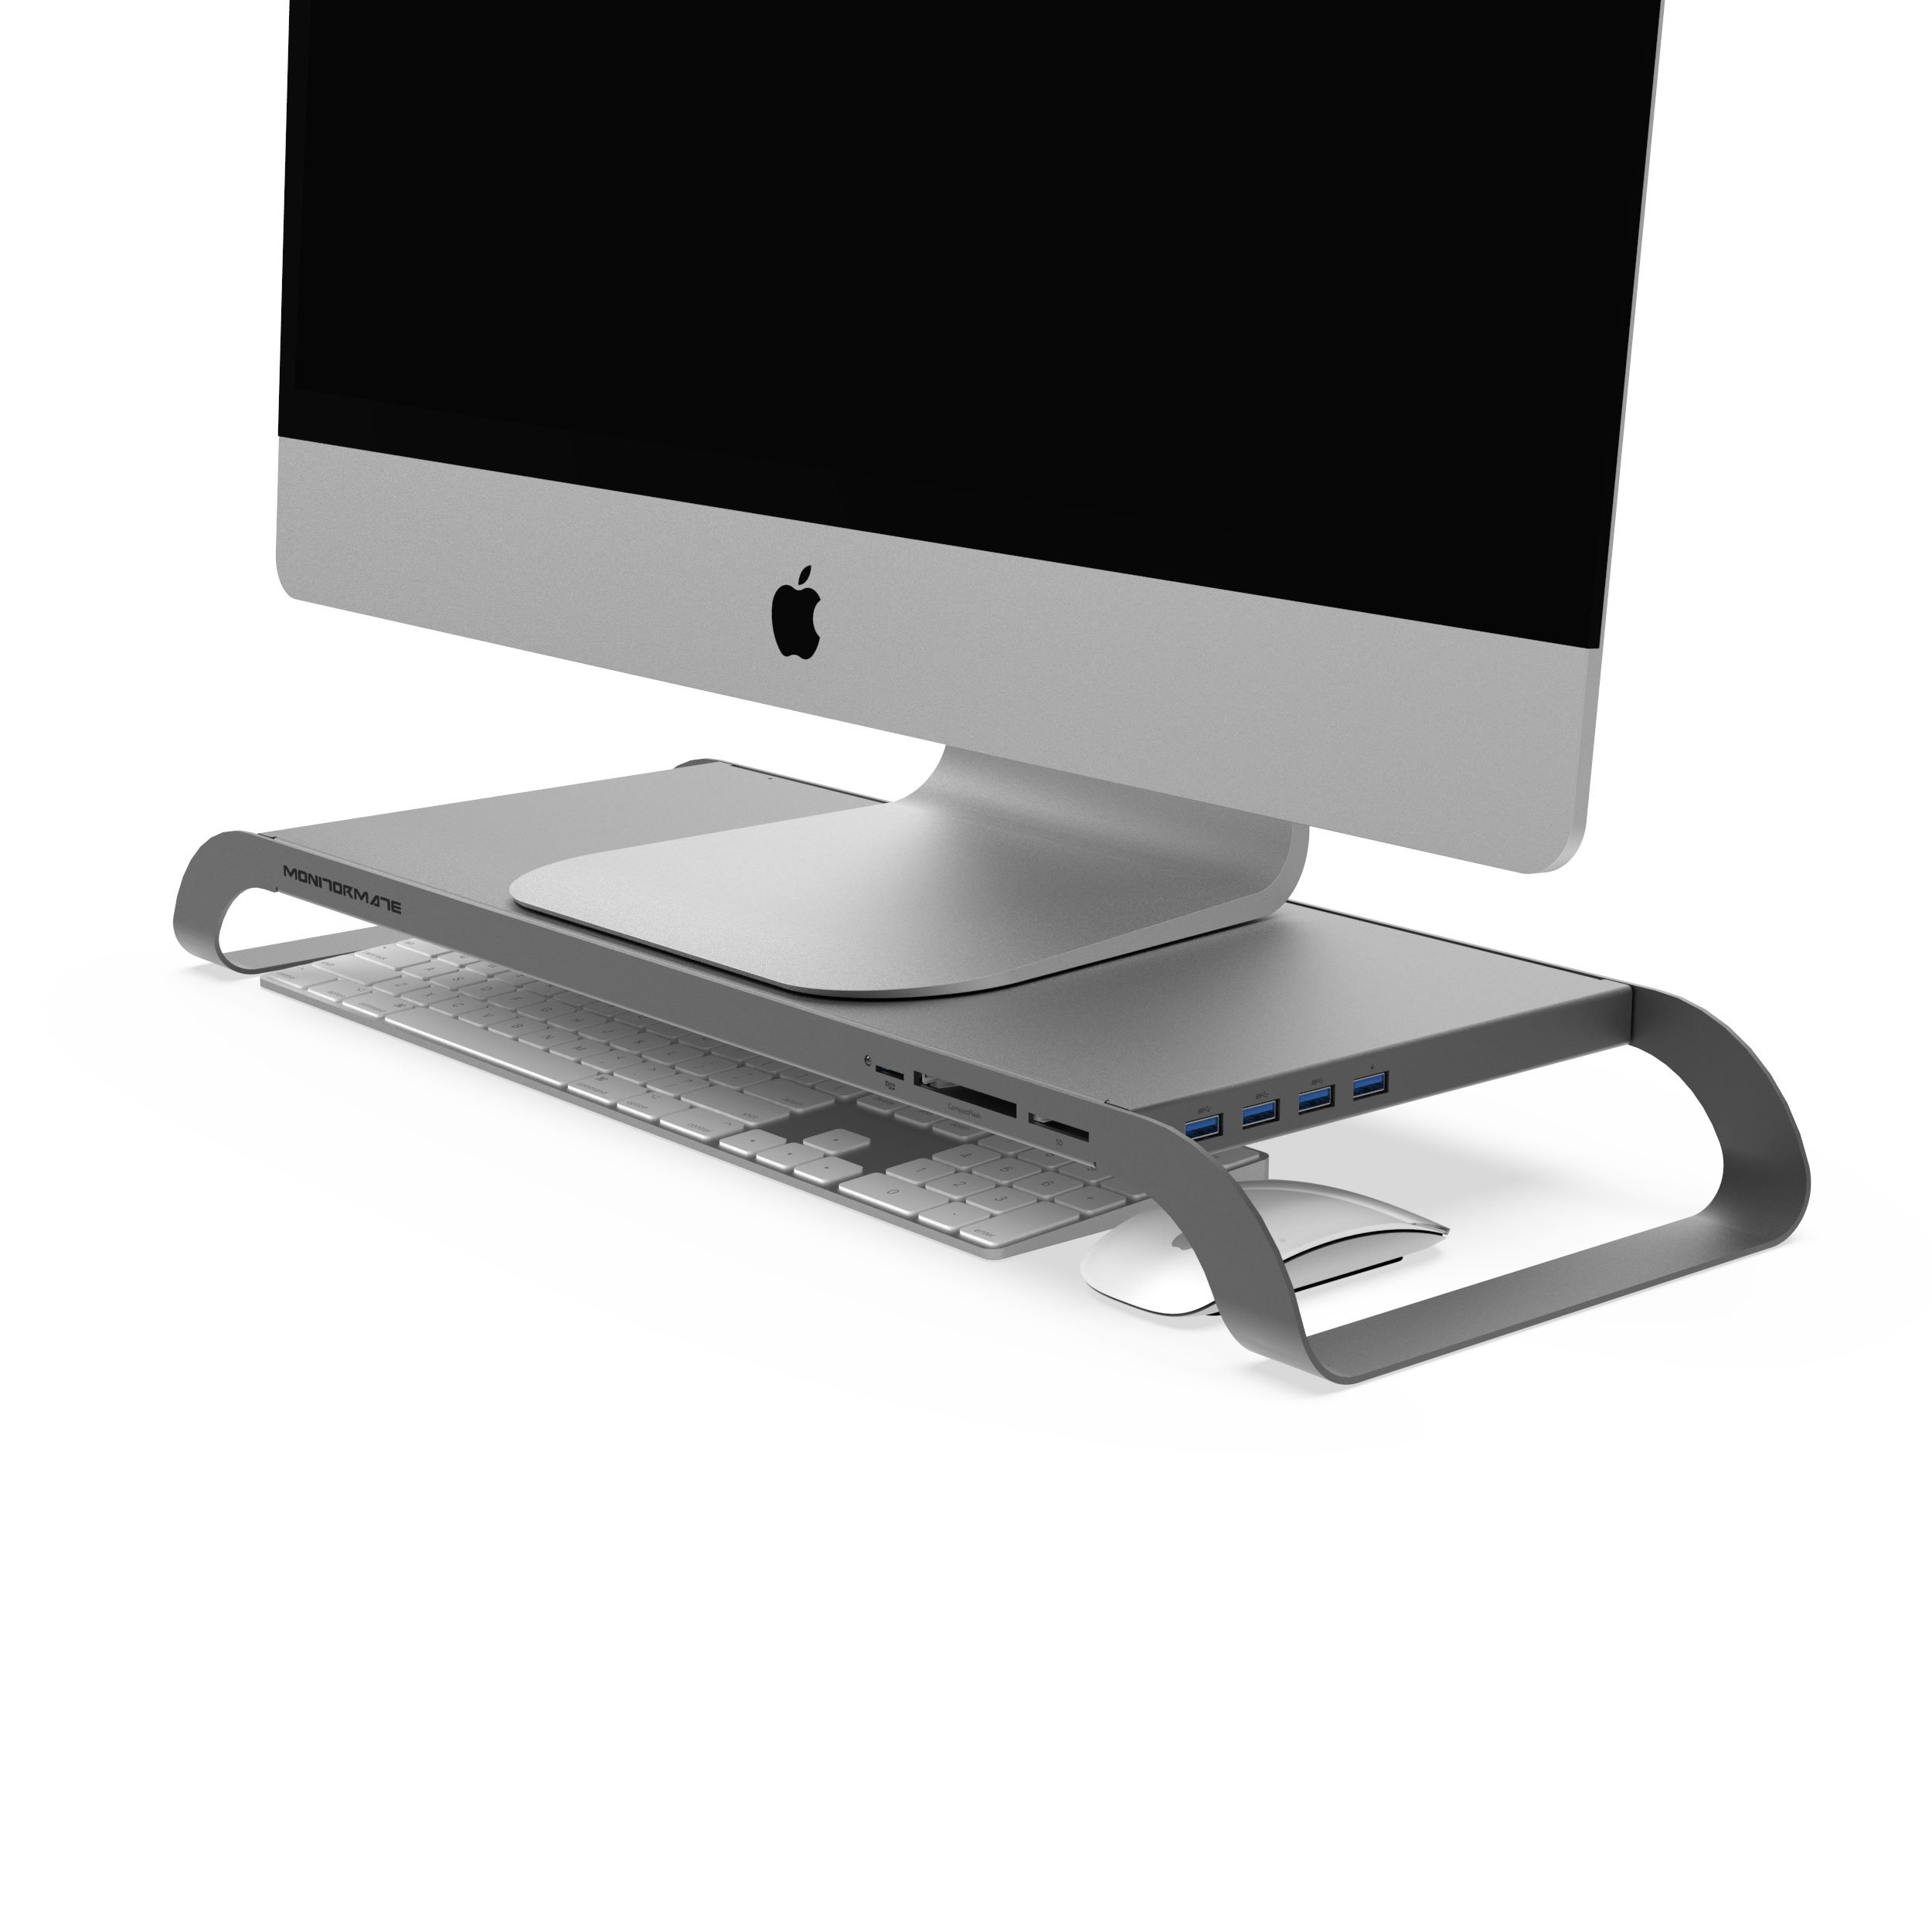 MonitorMate ProStation Aluminum Monitor Stand with USB3.0 hub, Card-Reader, Fast Charger, Hard Drive storage and external power supply(Gray)